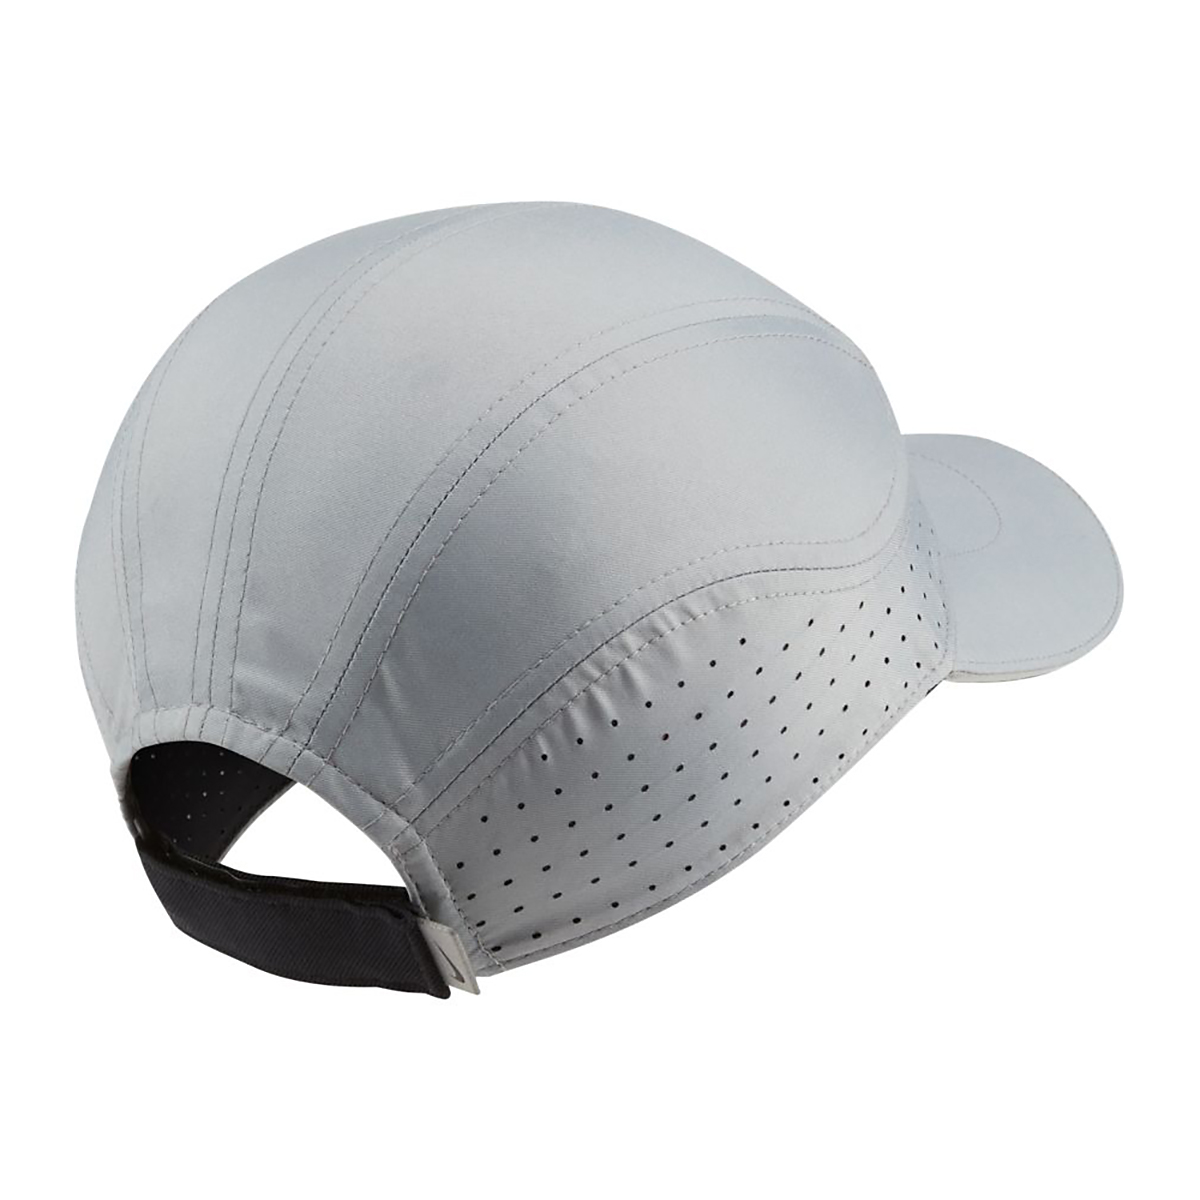 Women's Nike Aerobill Tailwind Elite Cap - Color: Grey, Grey, large, image 2